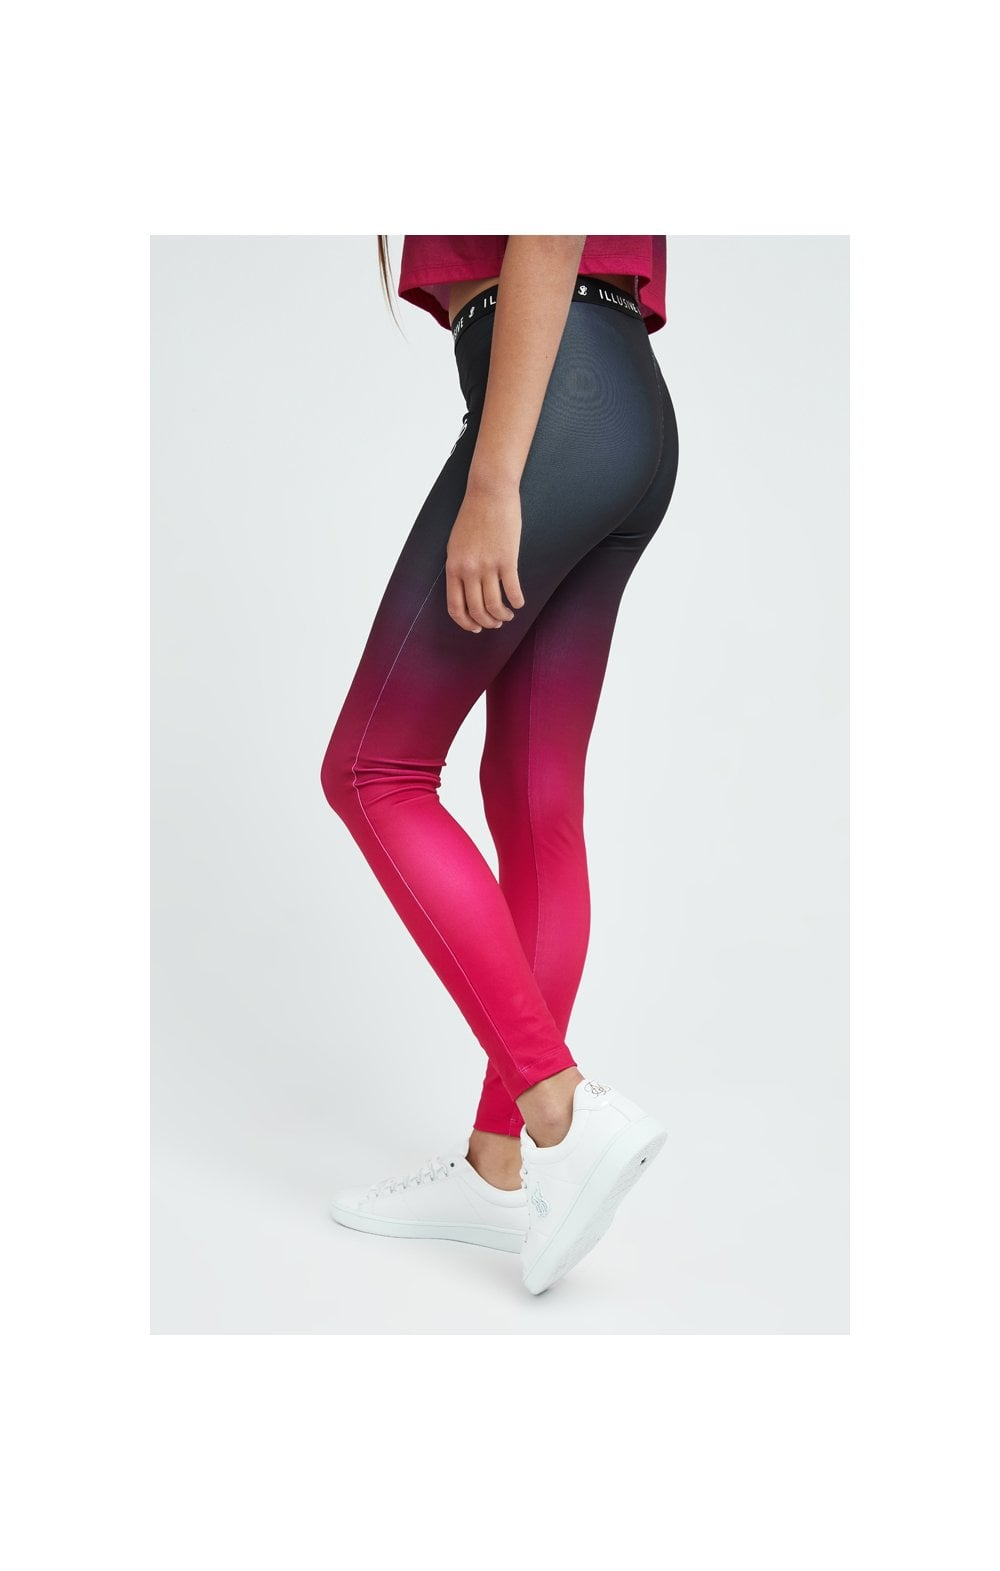 Illusive London Fade Leggings - Pink & Black (1)